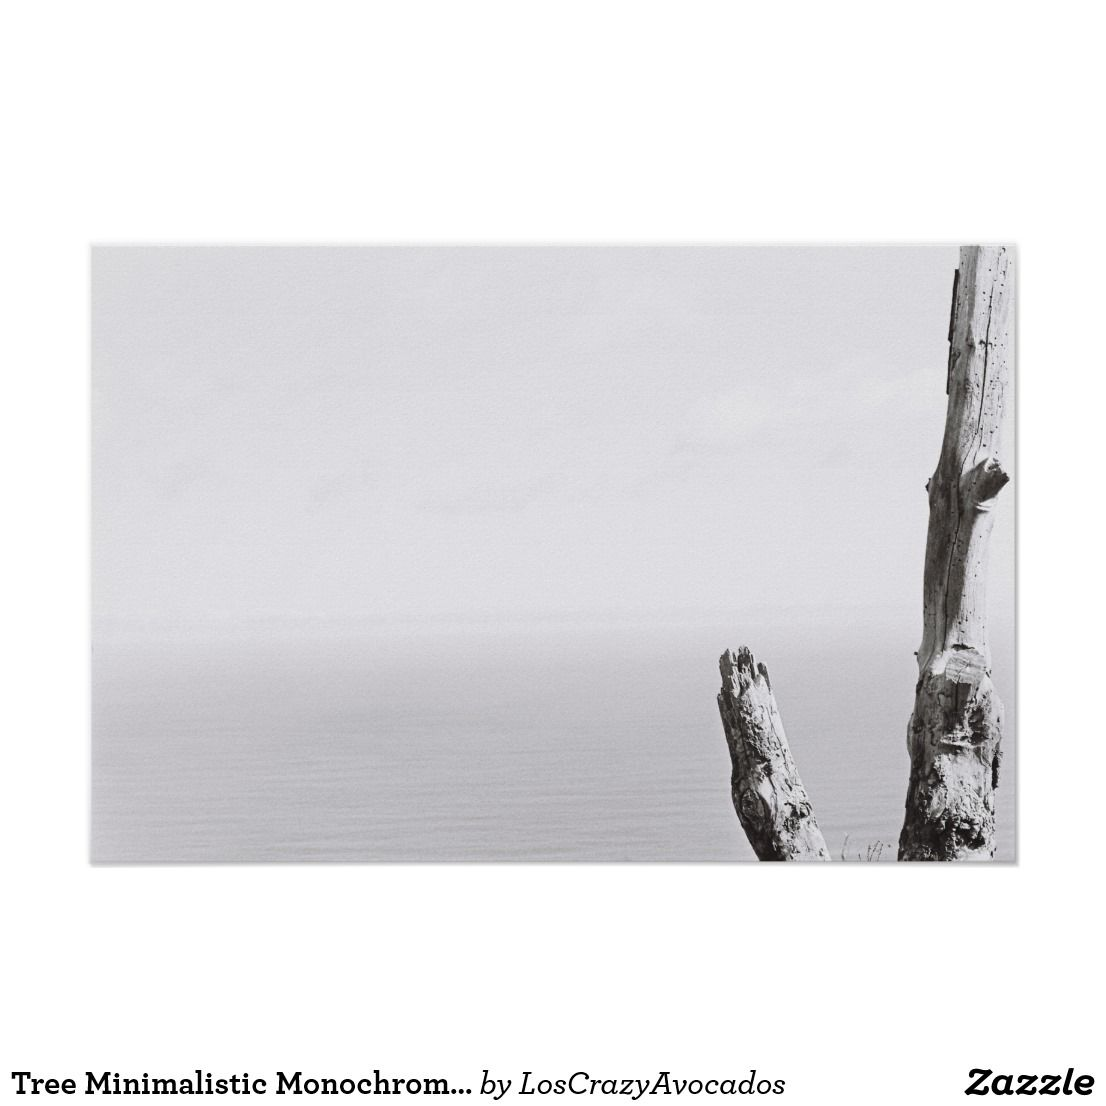 Tree Minimalistic Monochrome Kodak Film Poster | Zazzle com